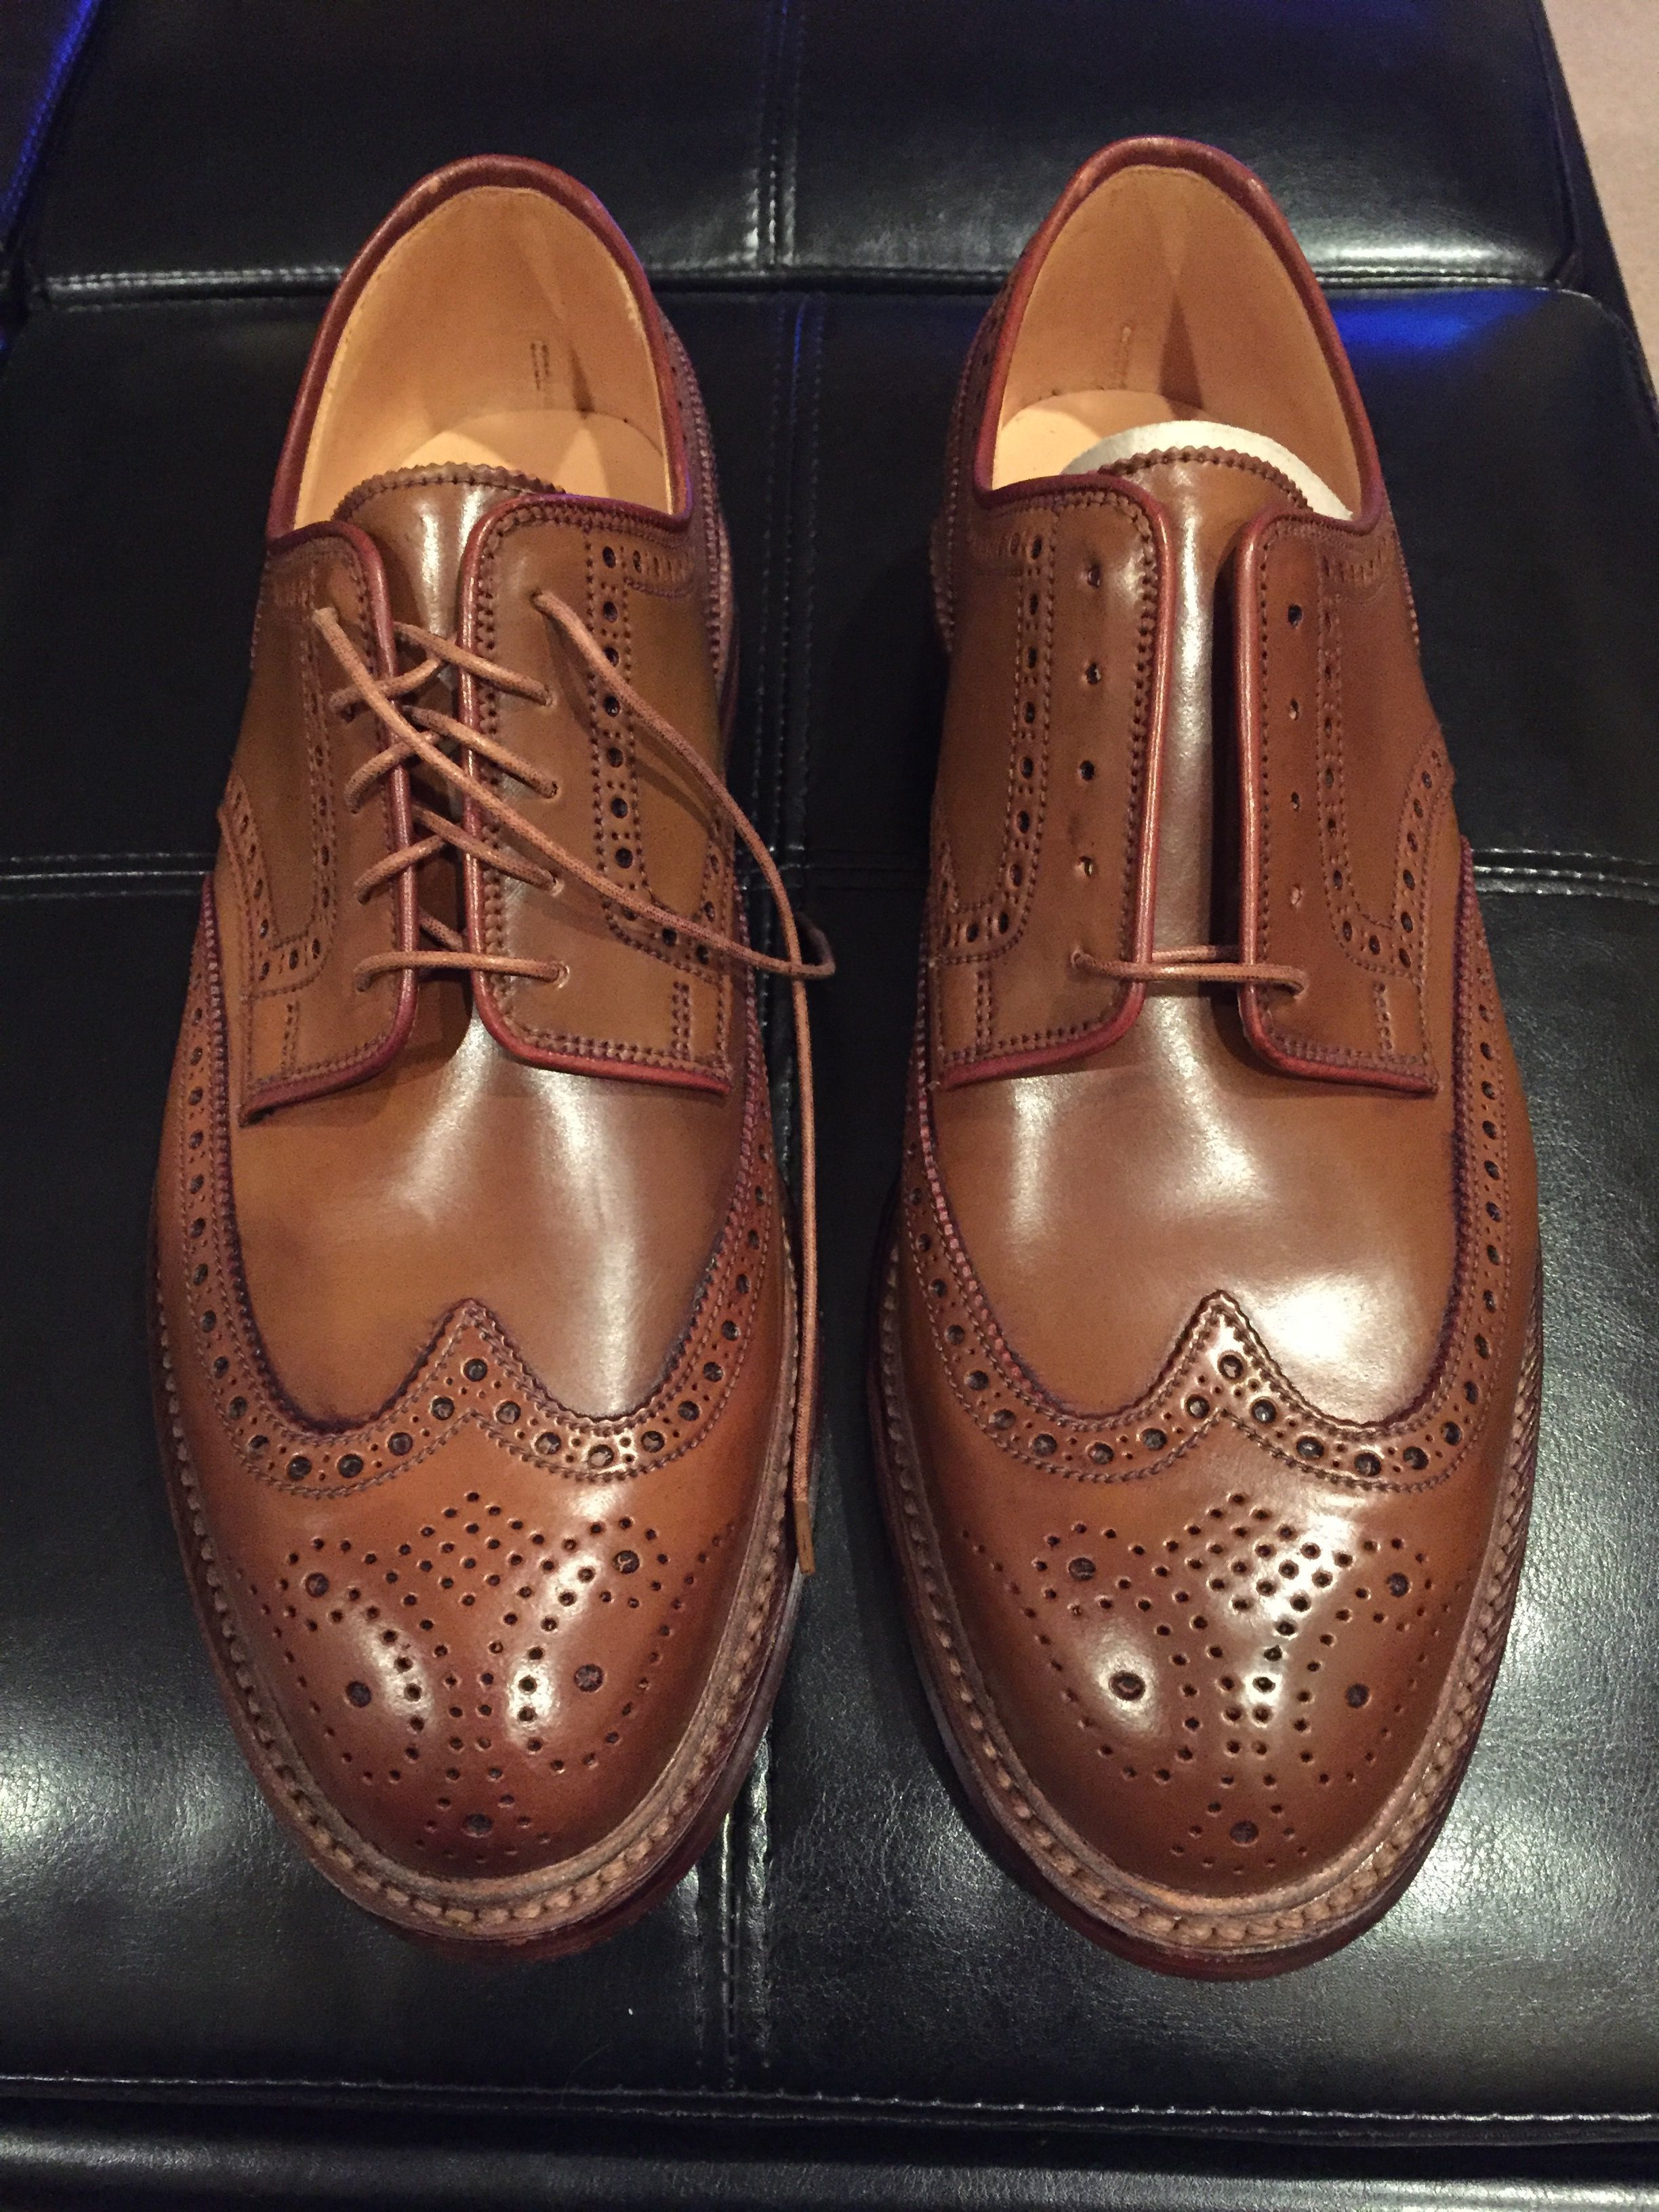 online store finest selection detailed pictures Crockett & Jones MTO Central | Page 433 | Styleforum